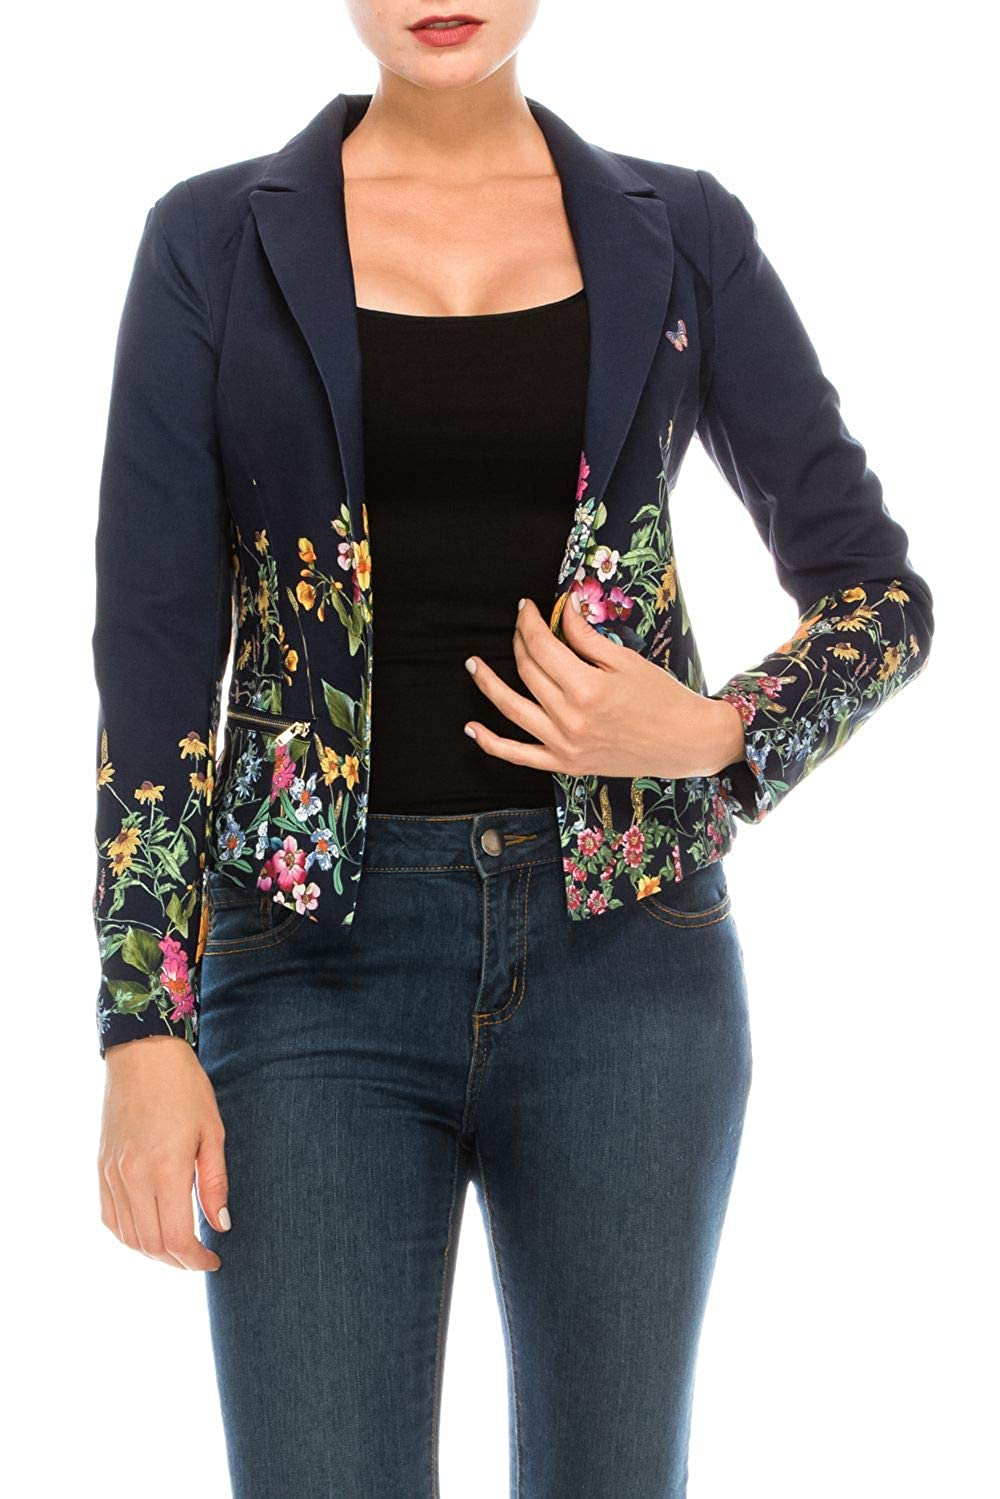 RolyPoly Womens Casual Work Office Open Front Blazer Jacket